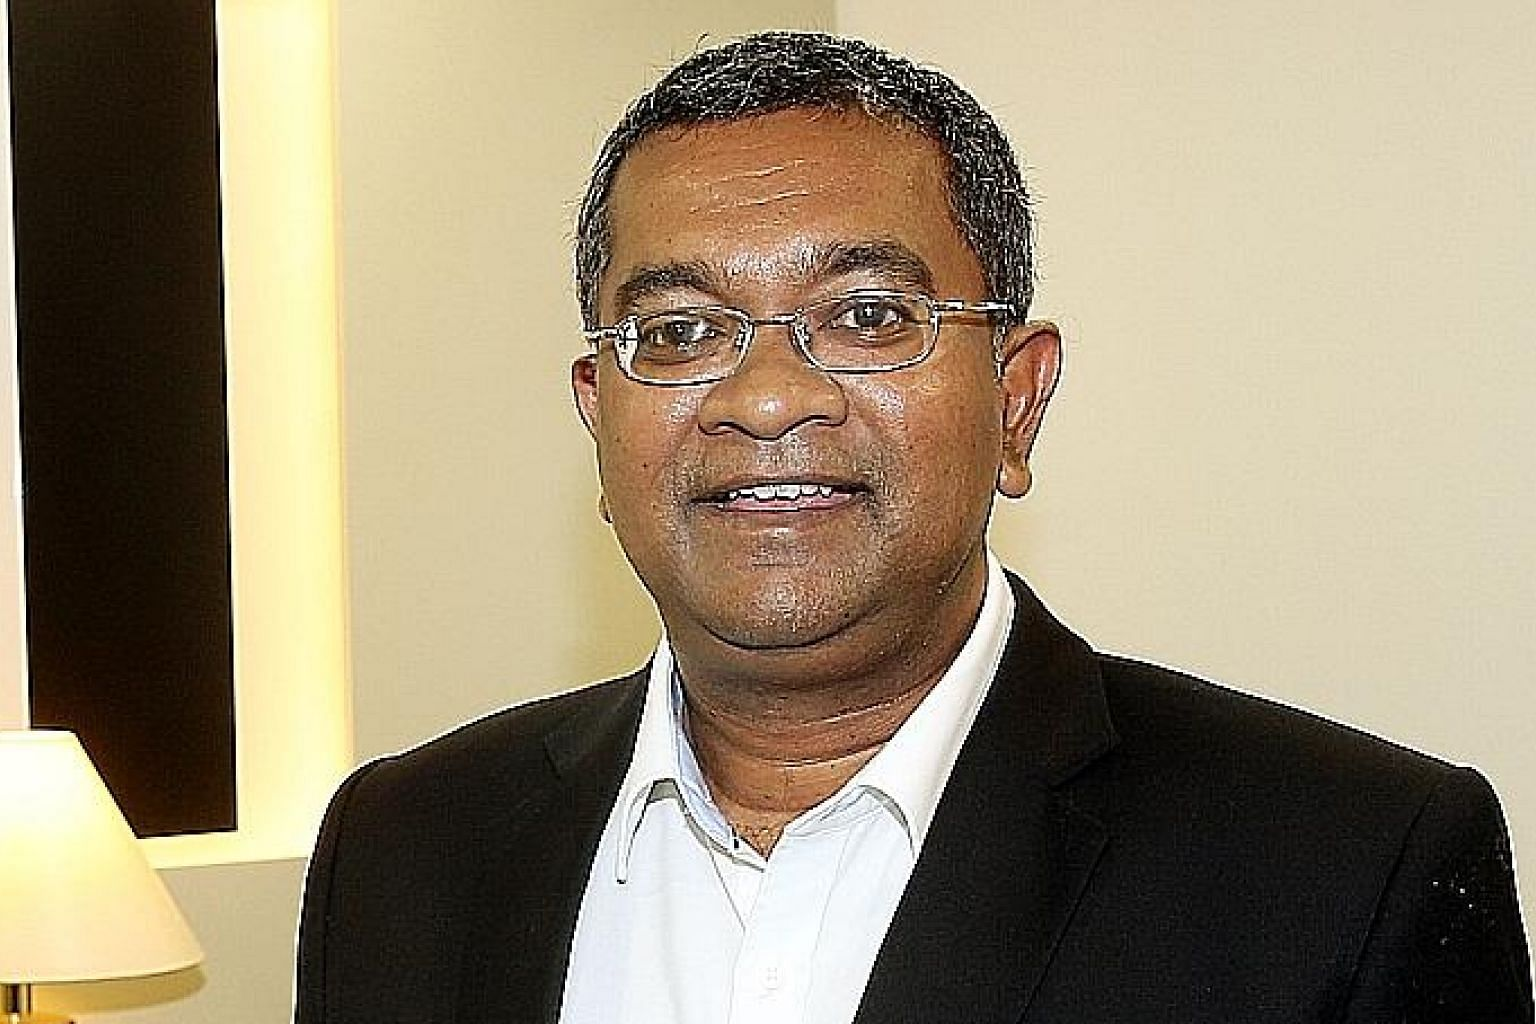 The tribunal found Mr Eugene Thuraisingam's remorse genuine, and noted that he was unlikely to reoffend.